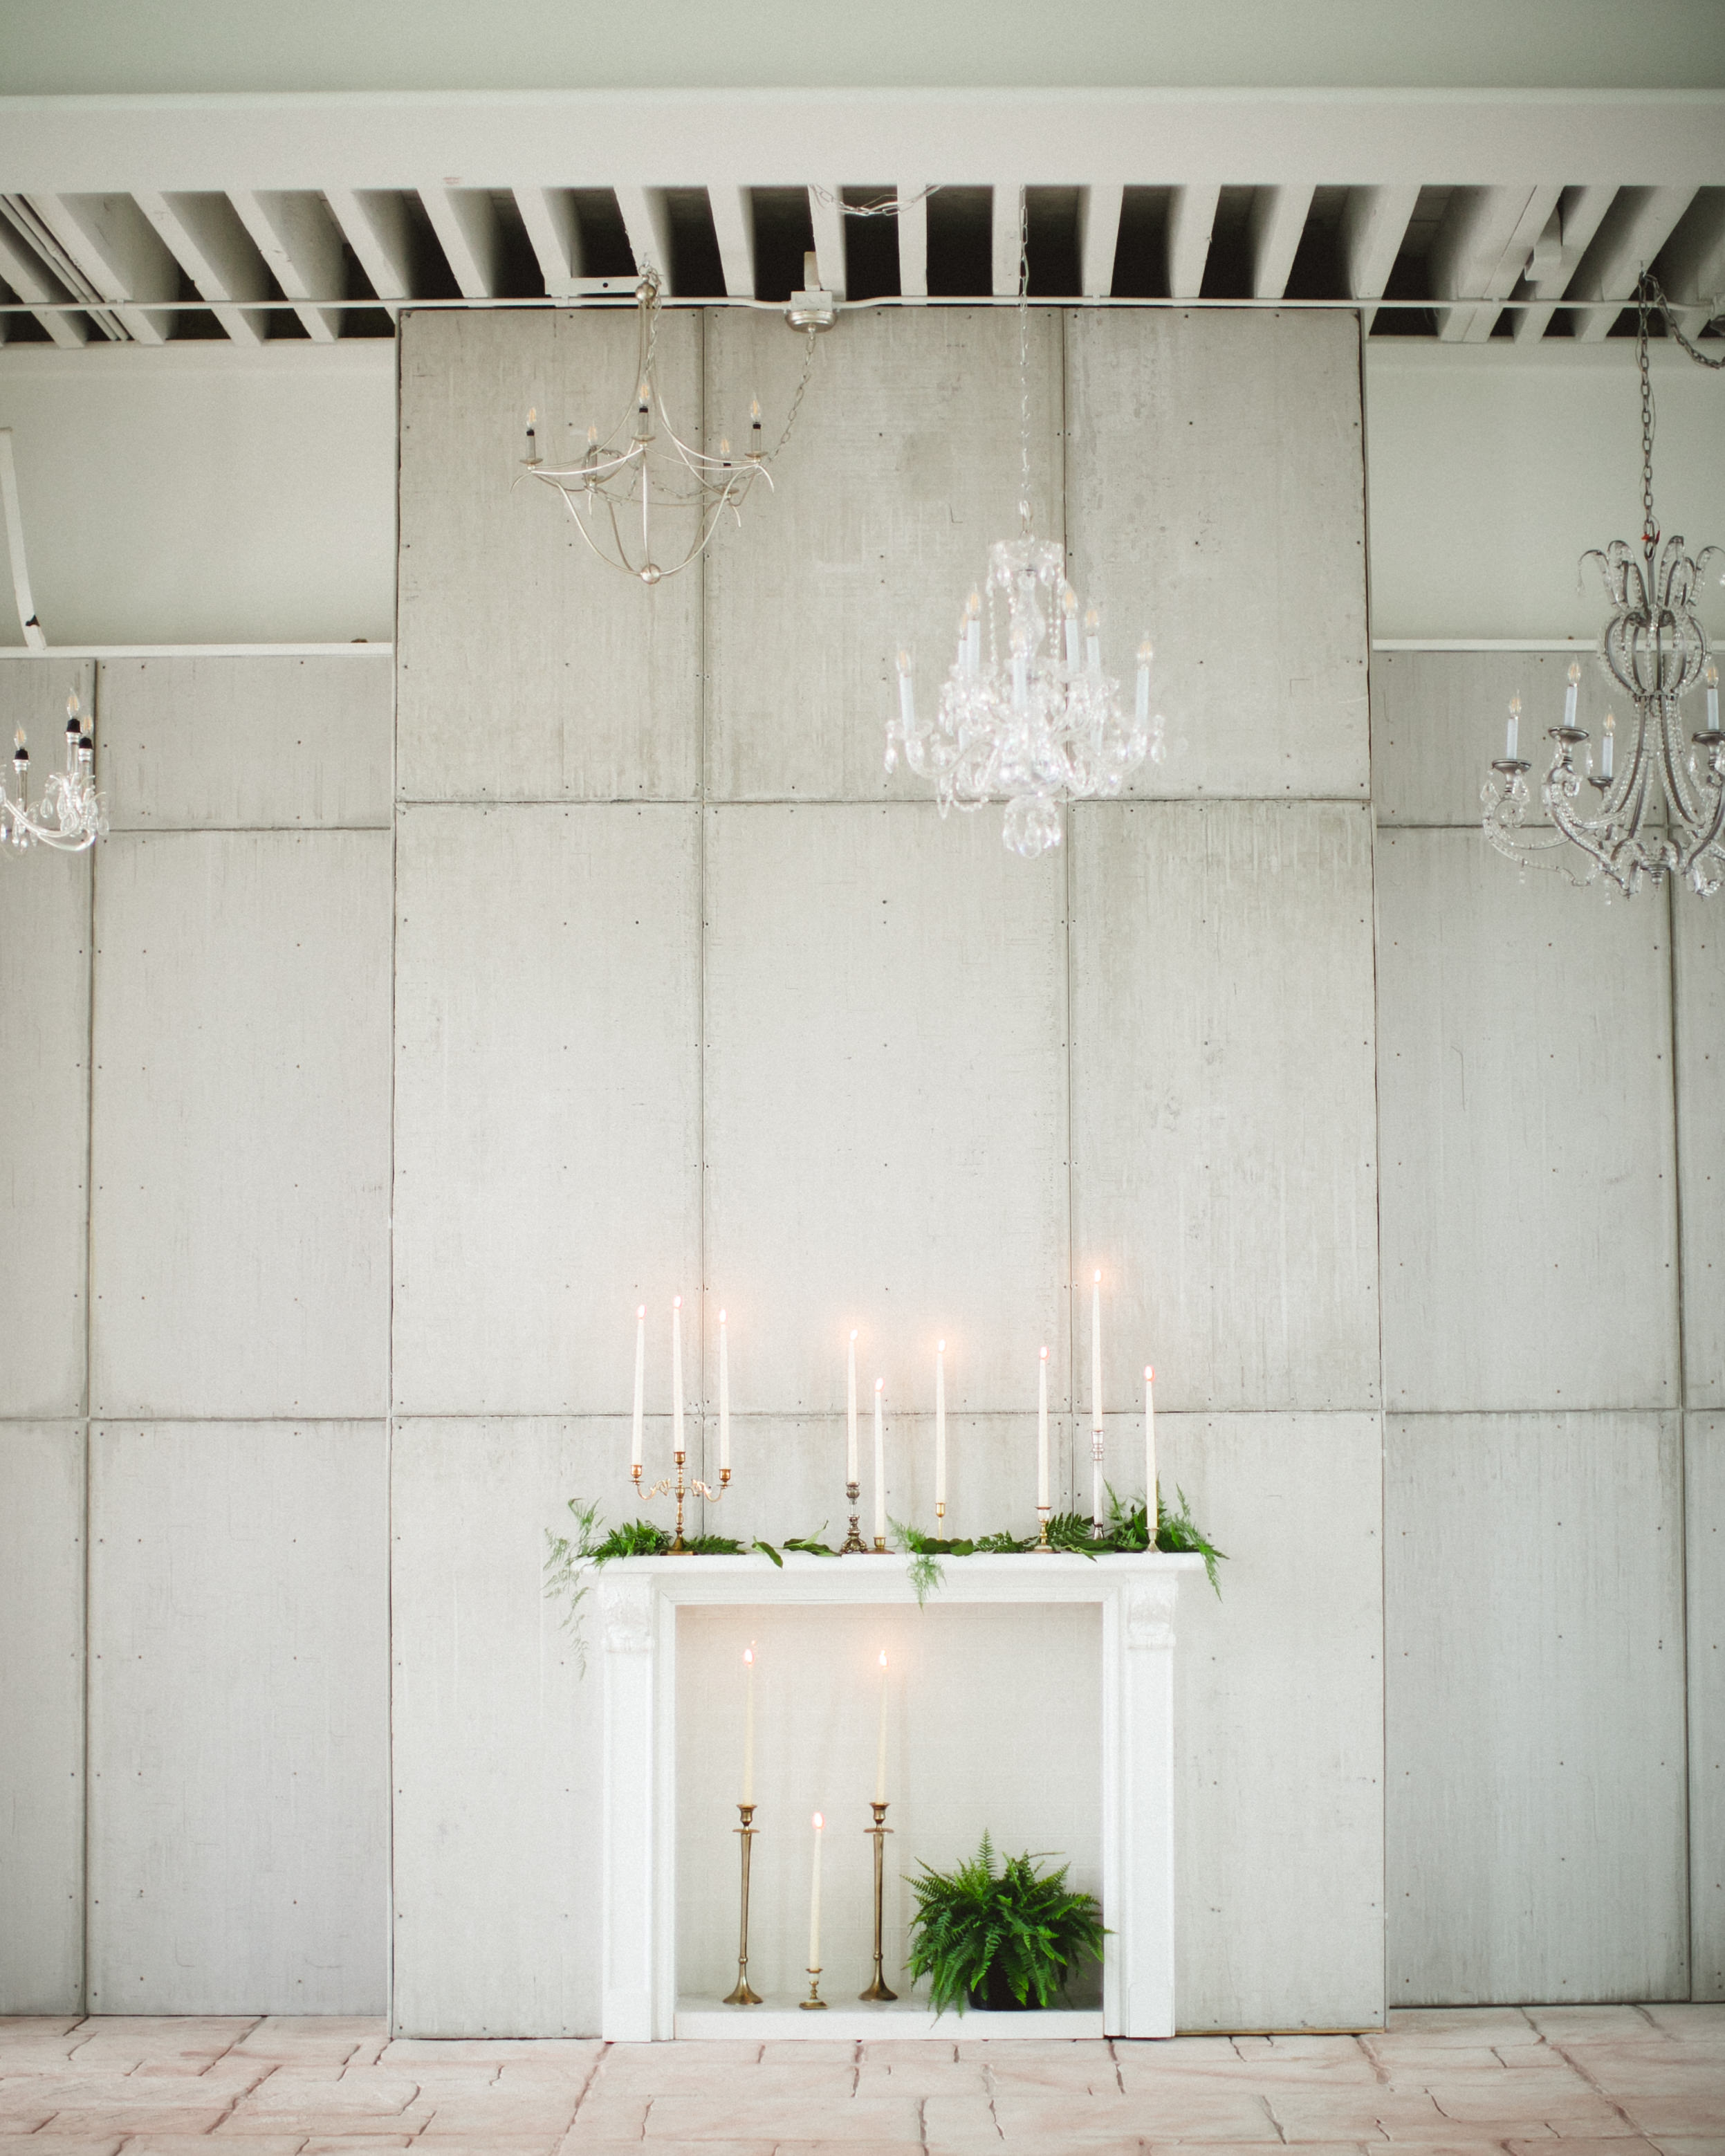 by Aimee Jobe Luminary Fern Brainerd Wedding Venue Greenery Bloom Designs-7.jpg